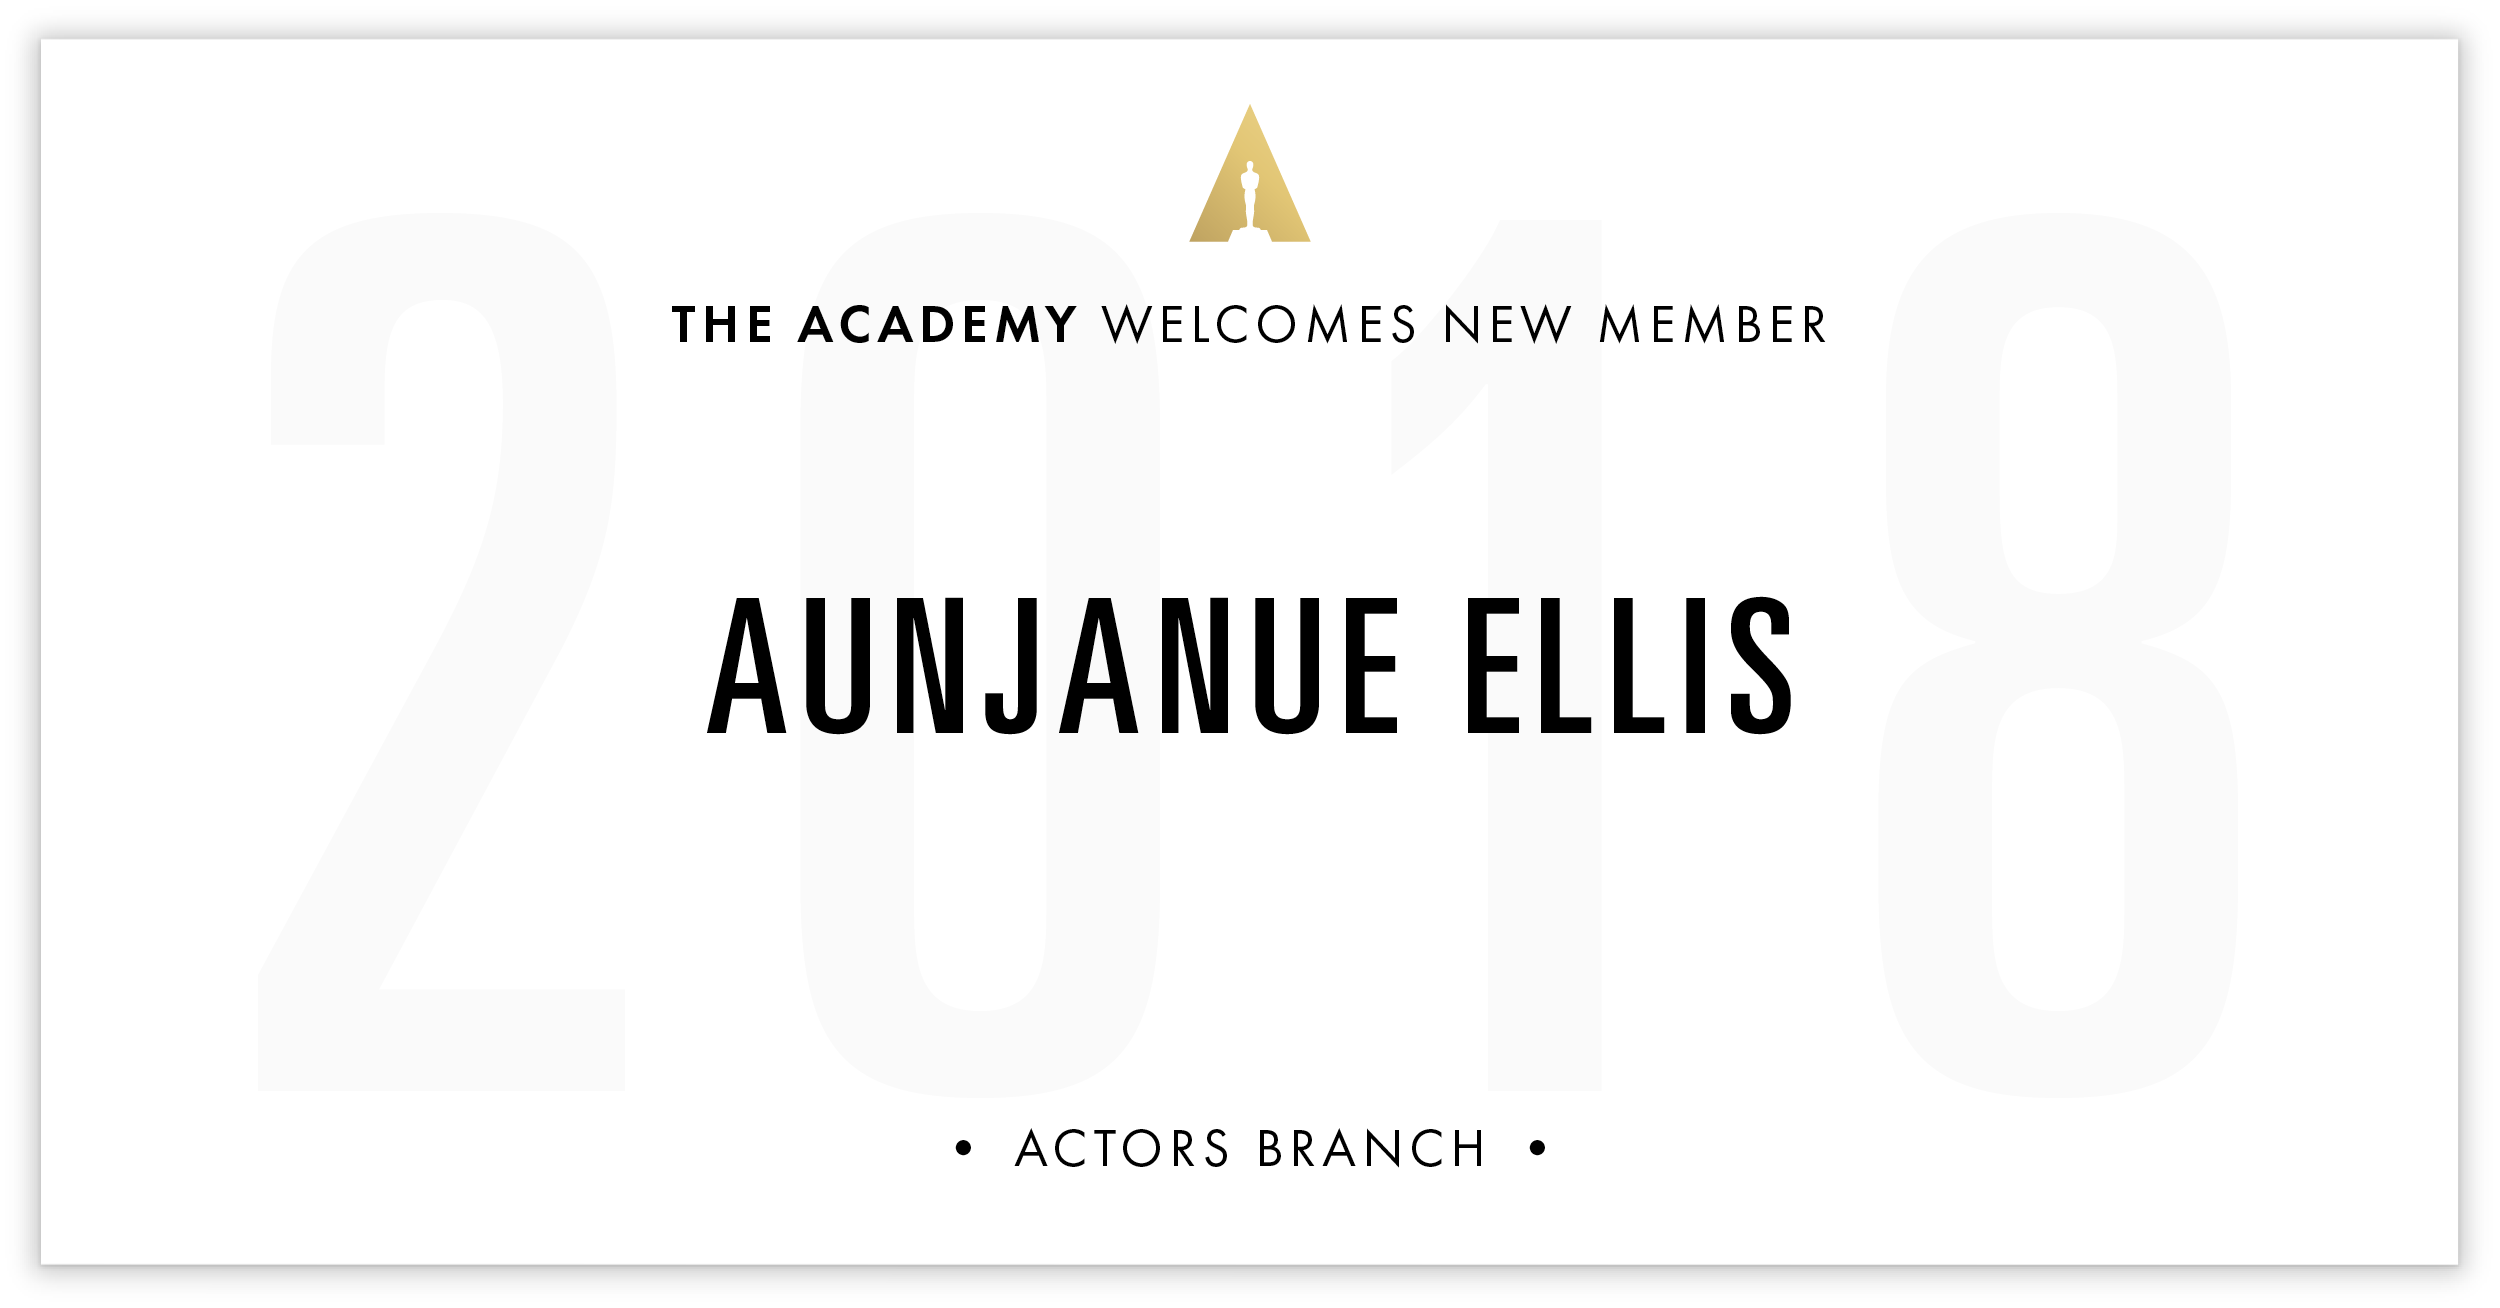 Aunjanue Ellis is invited!